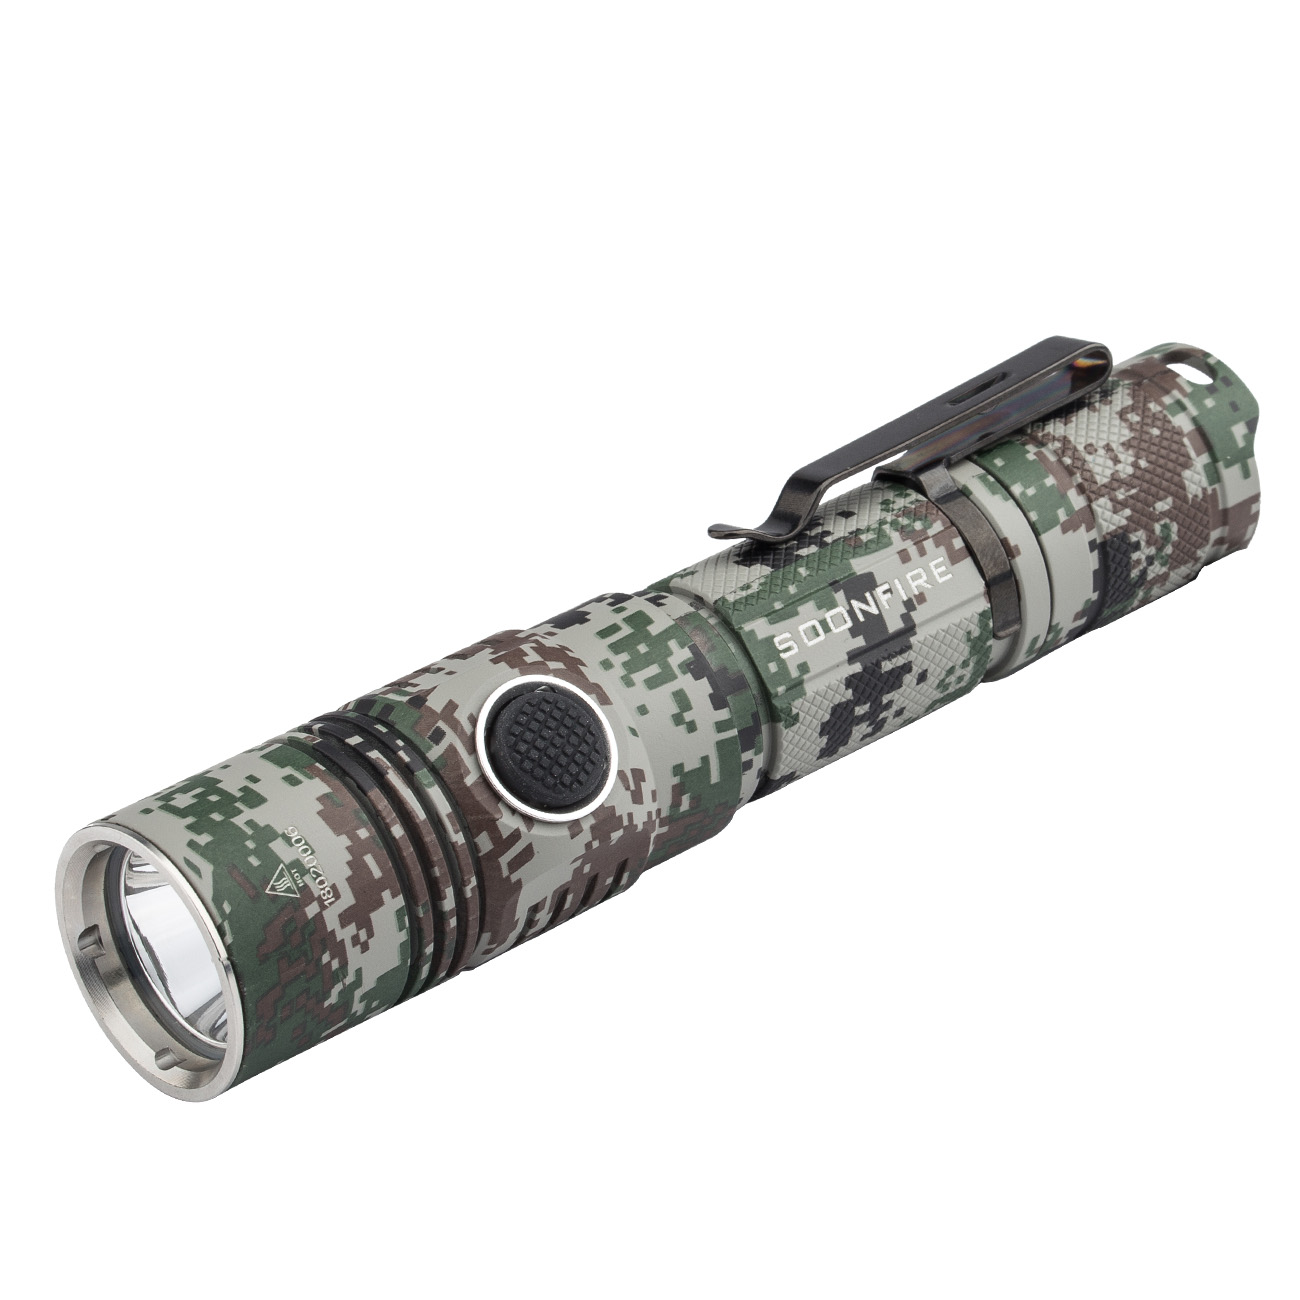 Soonfire DS32 Tactical Flashlight